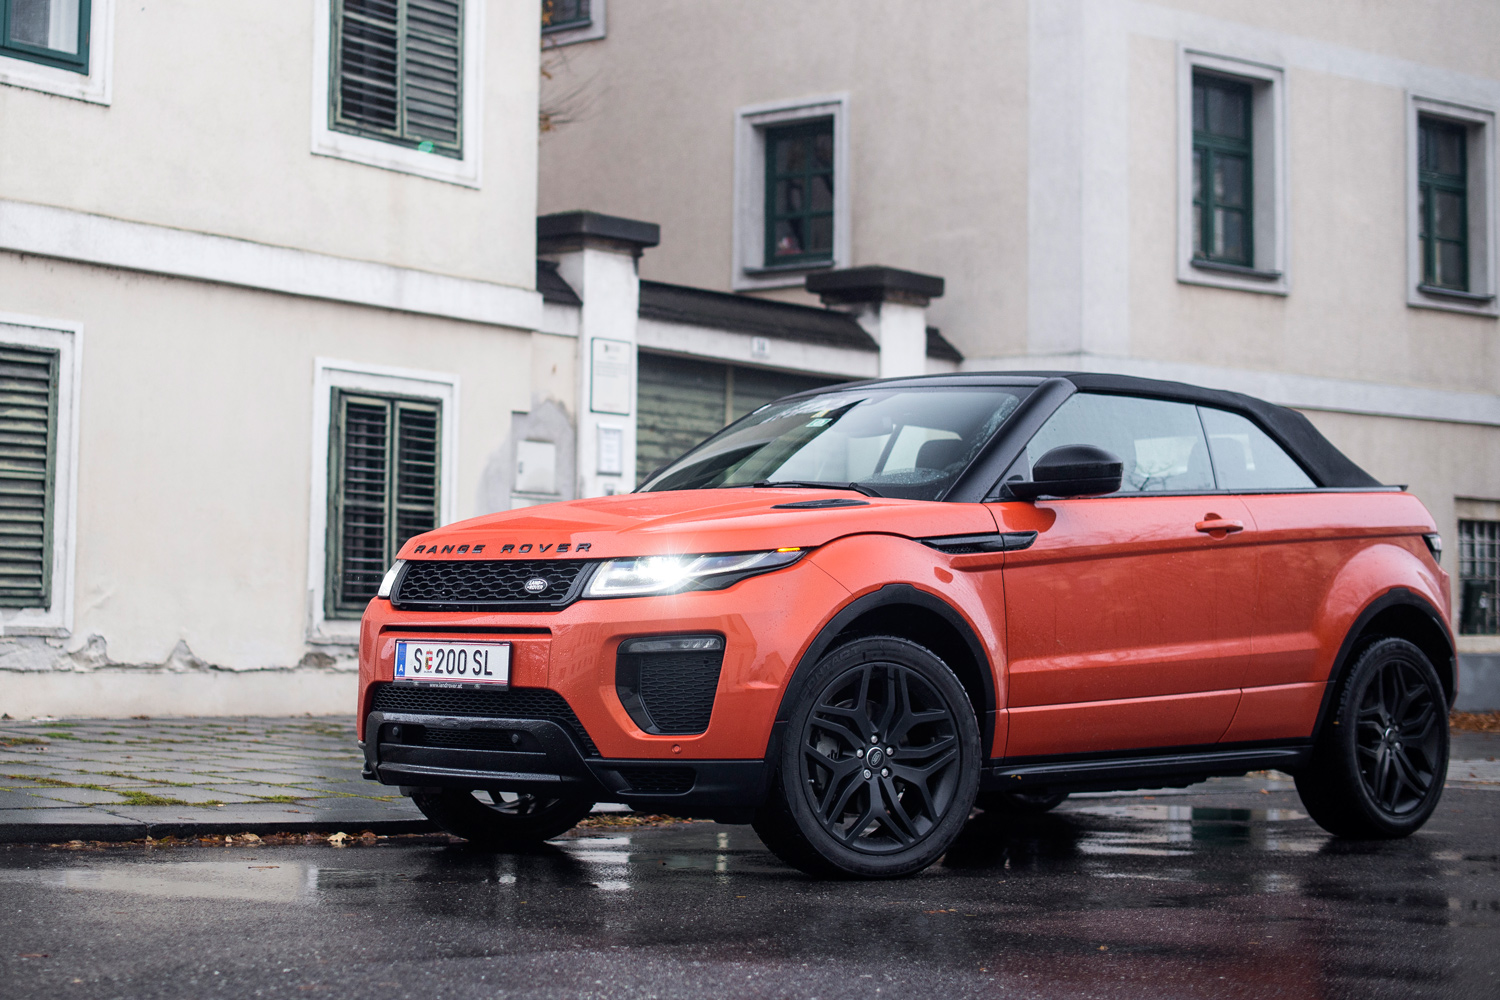 behaunski ber das range rover evoque cabrio motorblock. Black Bedroom Furniture Sets. Home Design Ideas